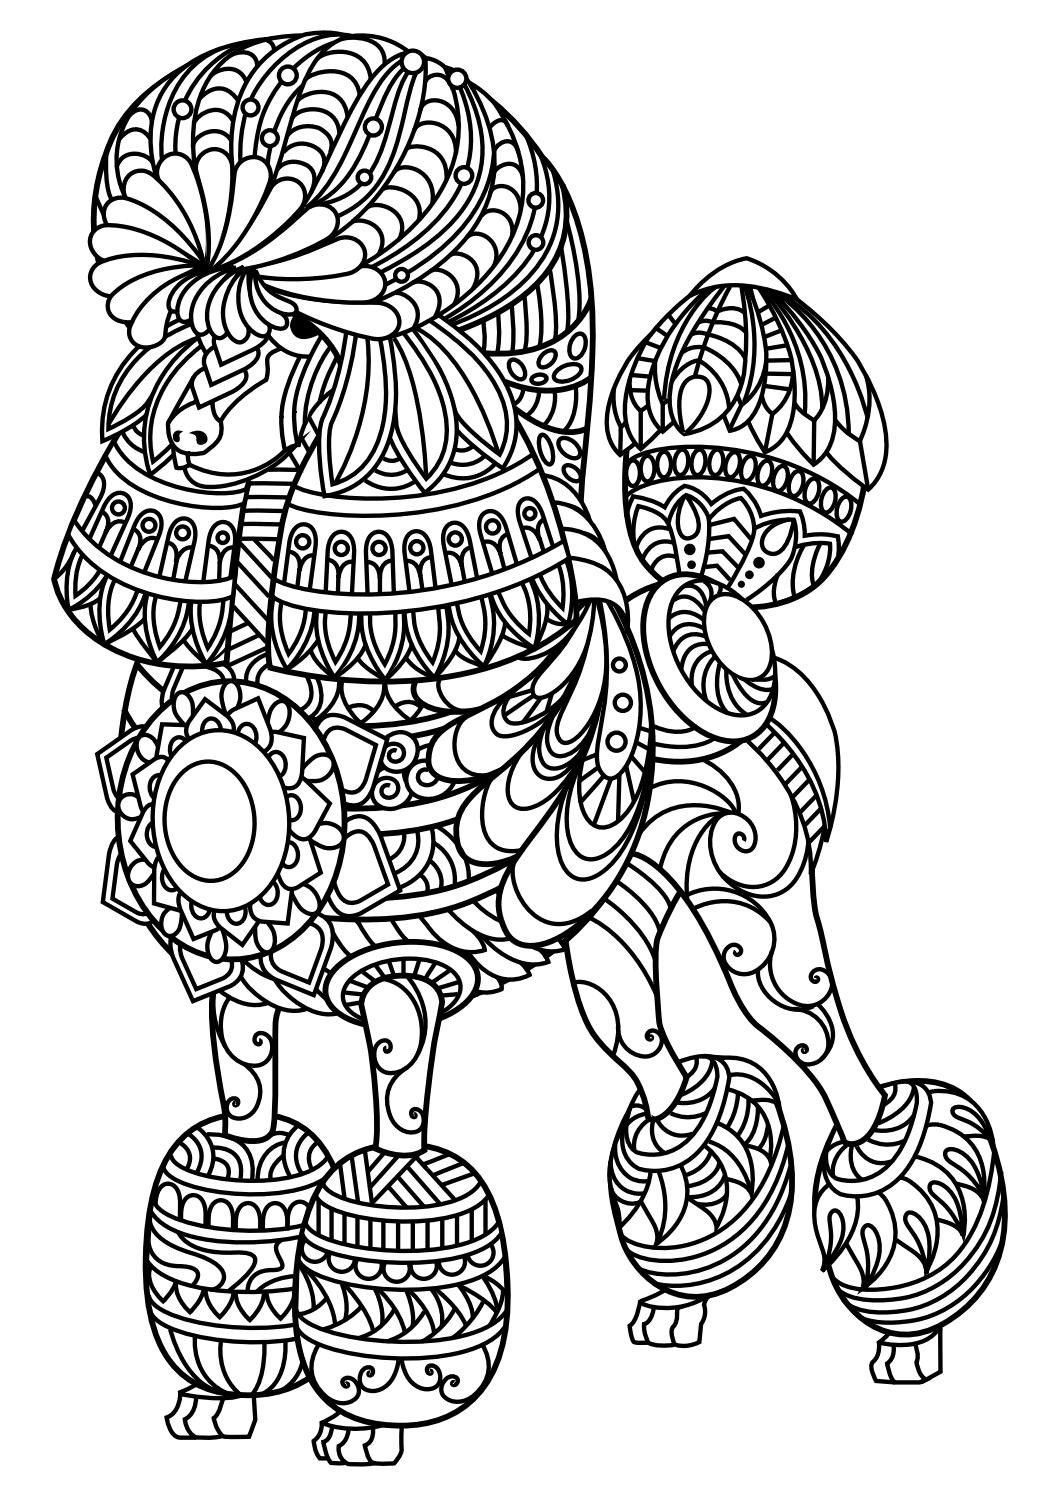 Coloring Farm Animals Colouring Pages Pdf Also Wild Animal Adult